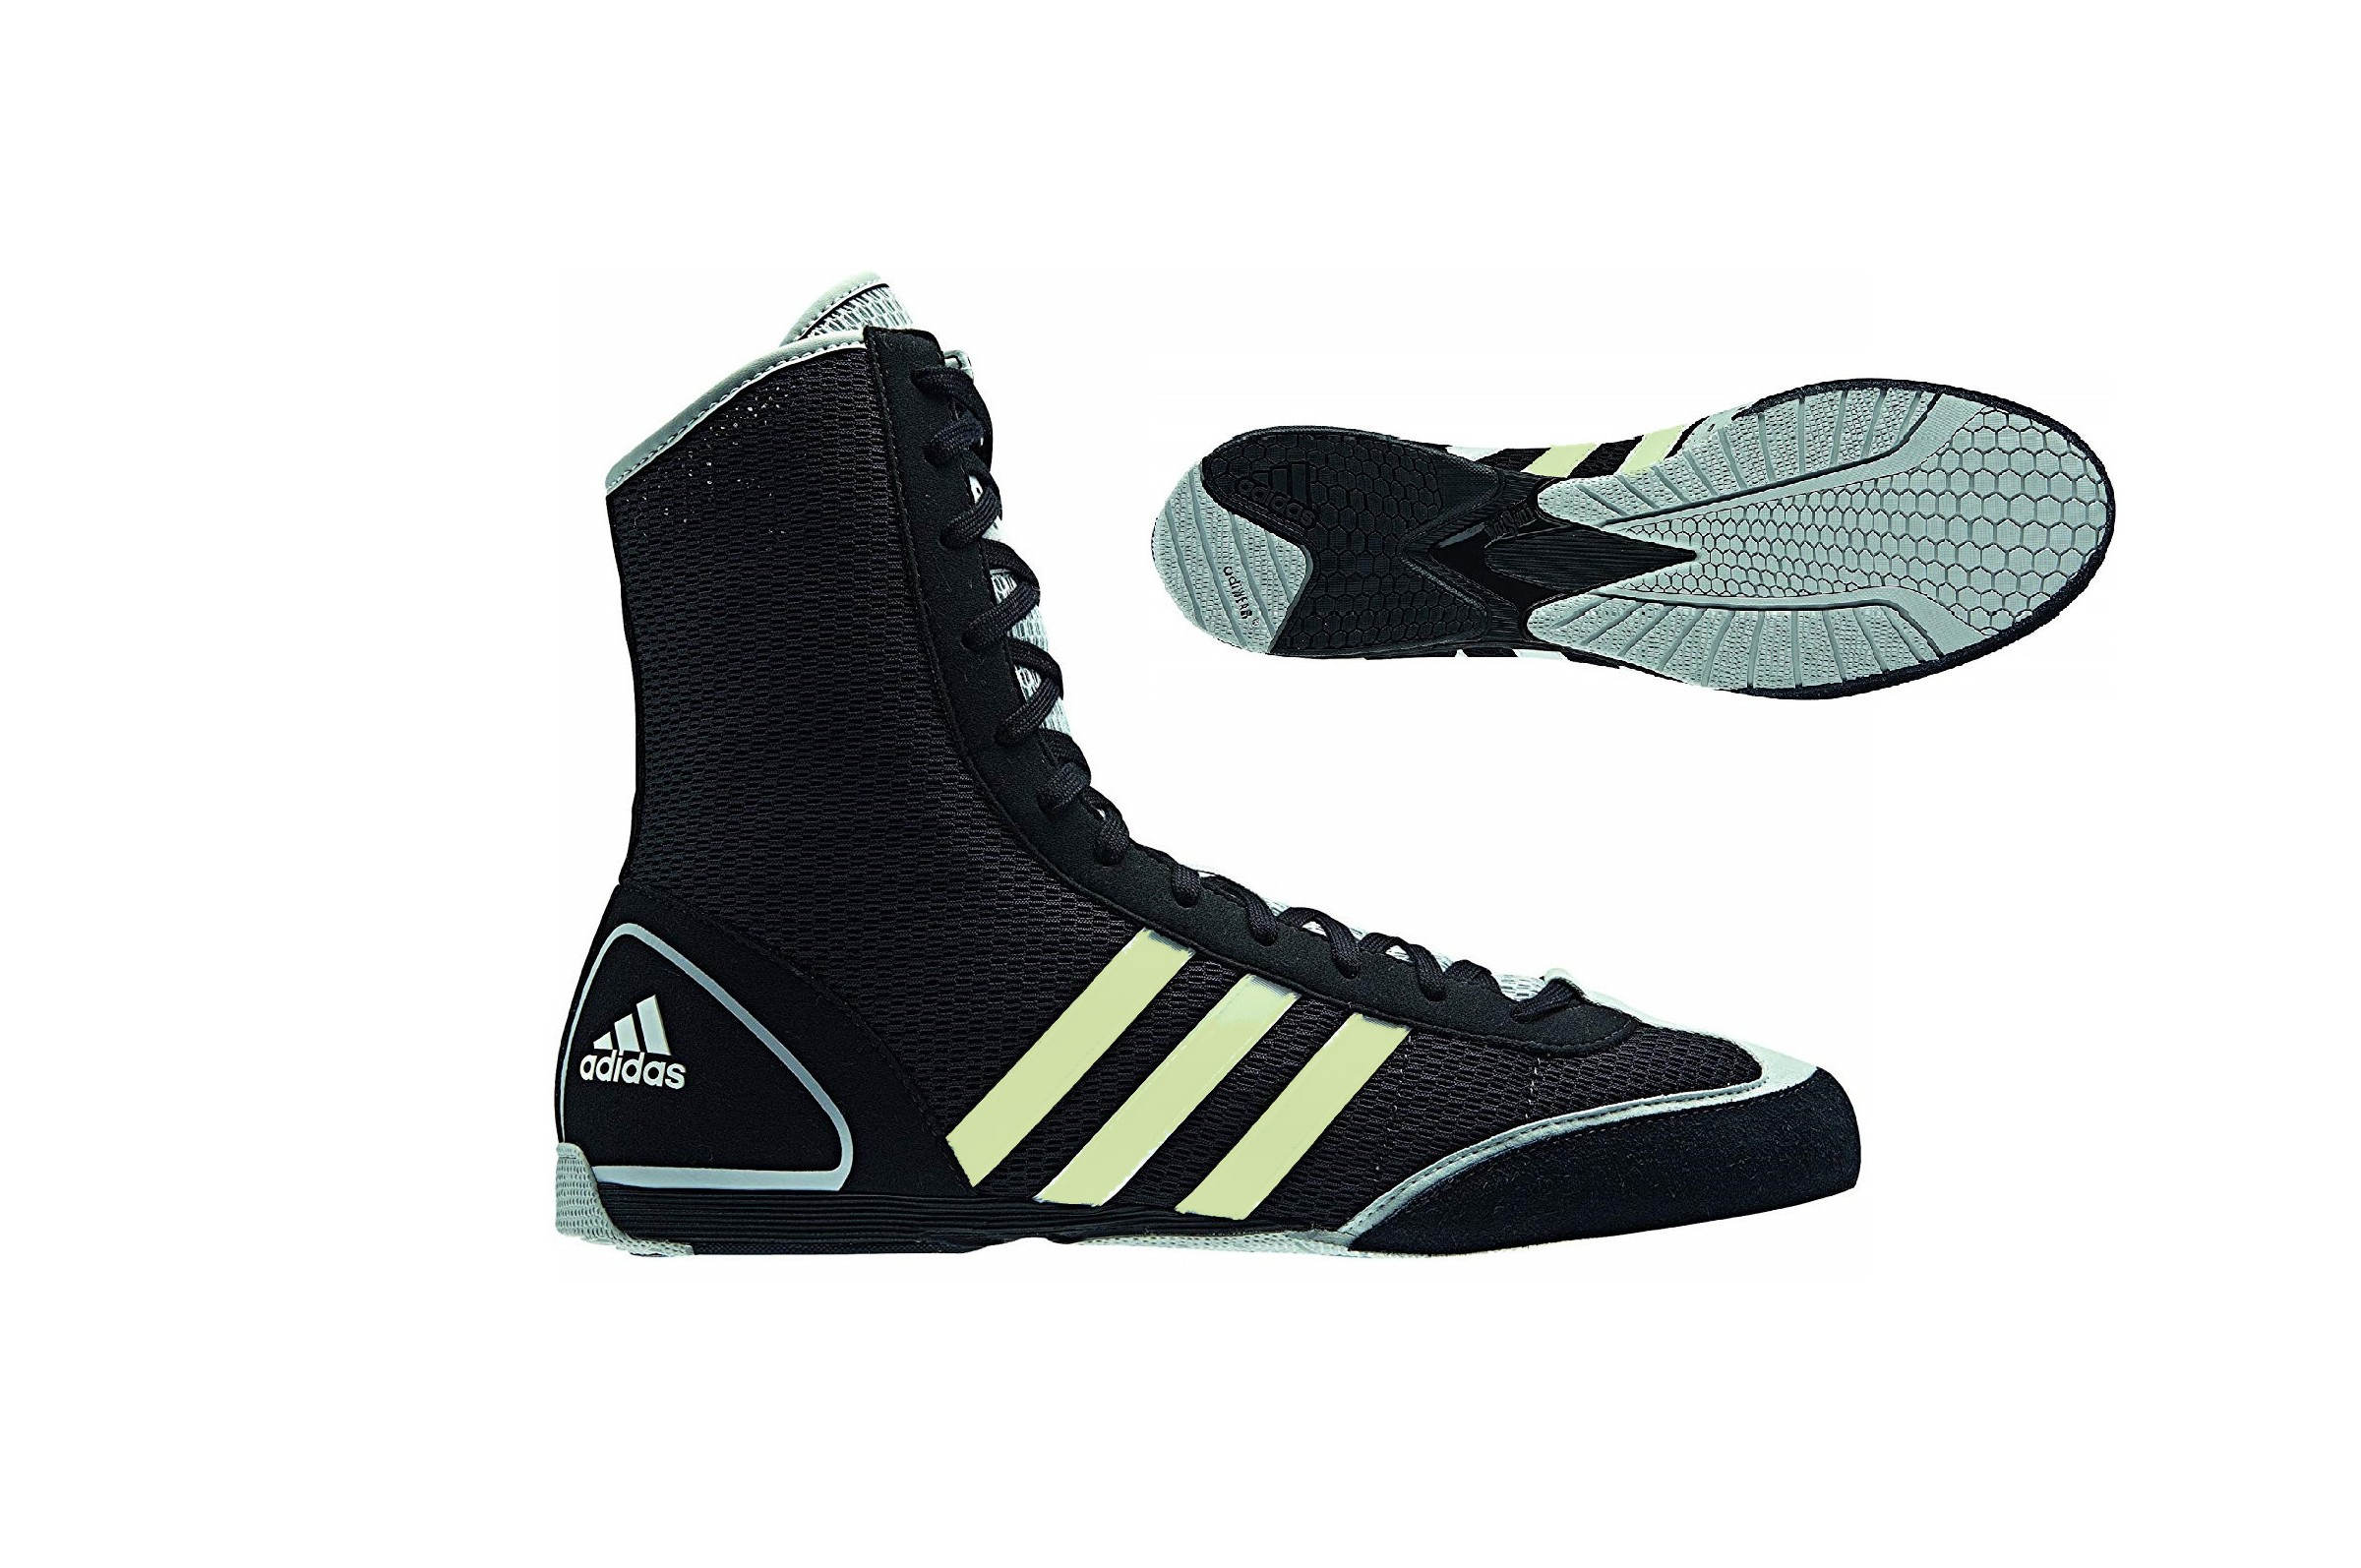 eu Adidas Ii Rival Déstock Boxe G62604 Chaussures Dragonsports BqgcZwa